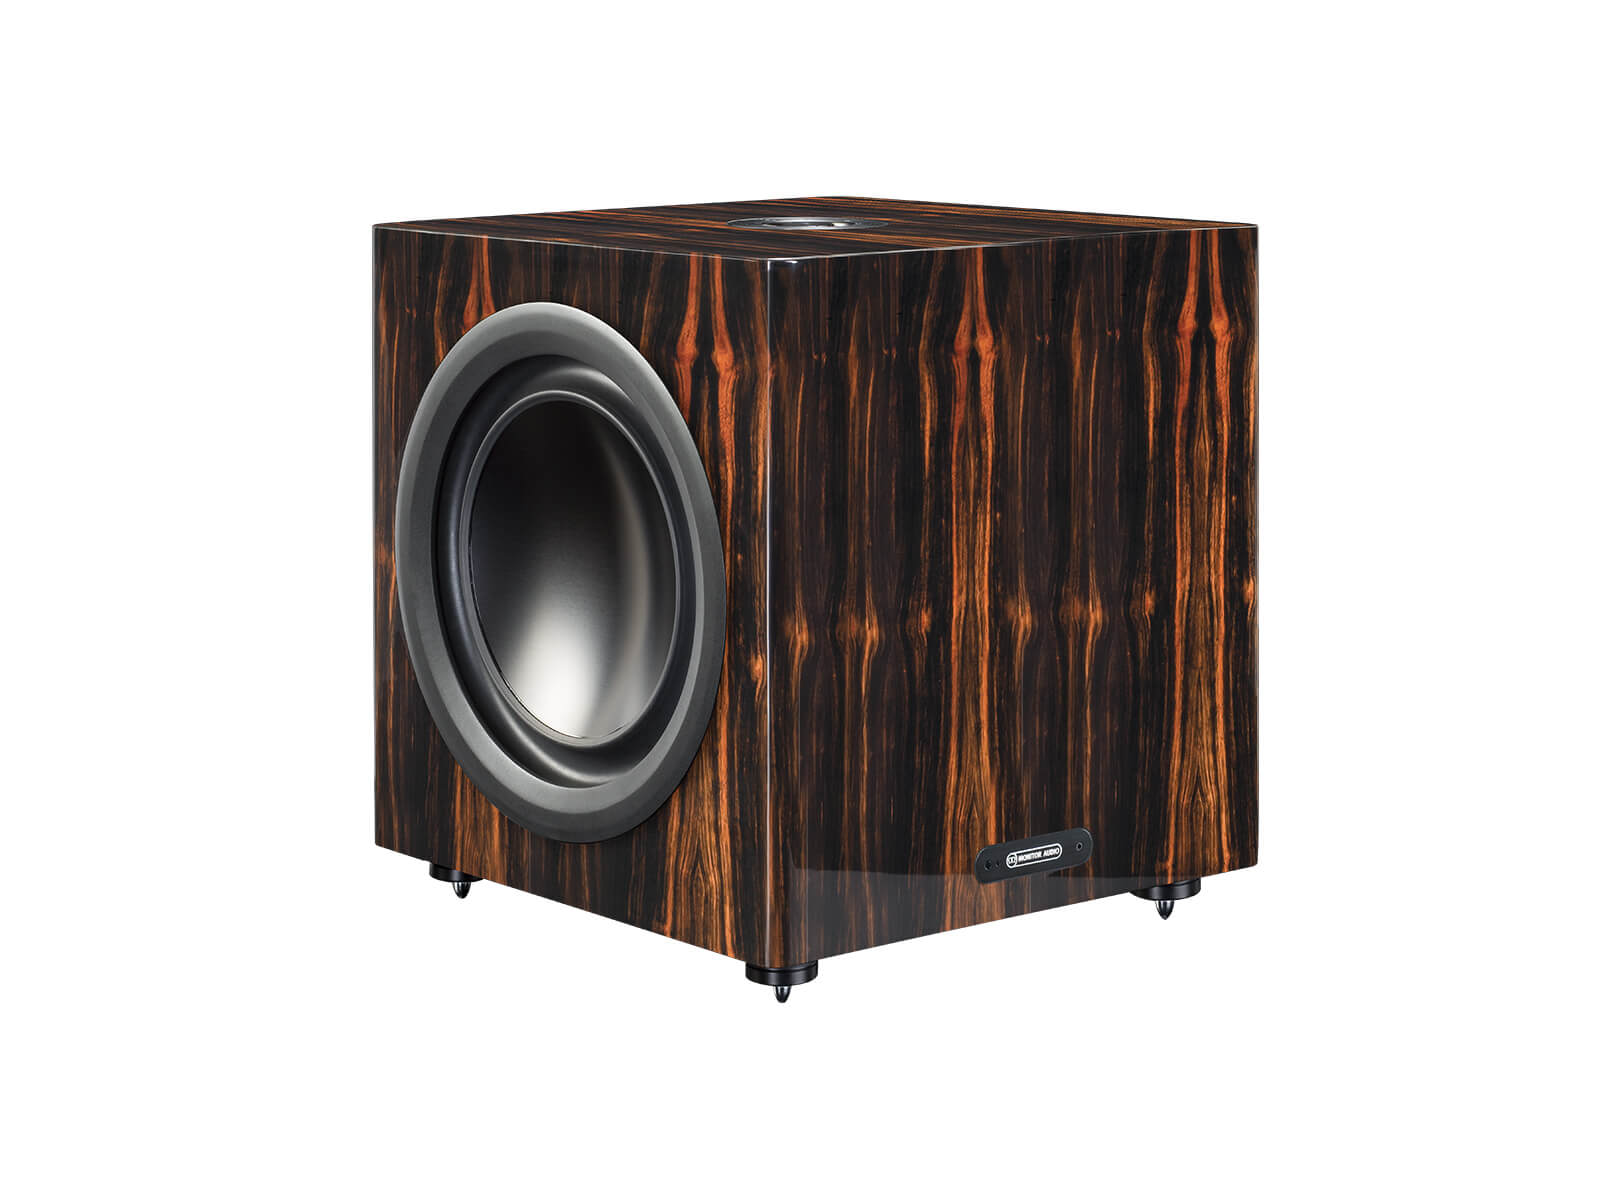 Platinum PLW215 II, subwoofer, with a santos rosewood real wood veneer finish.